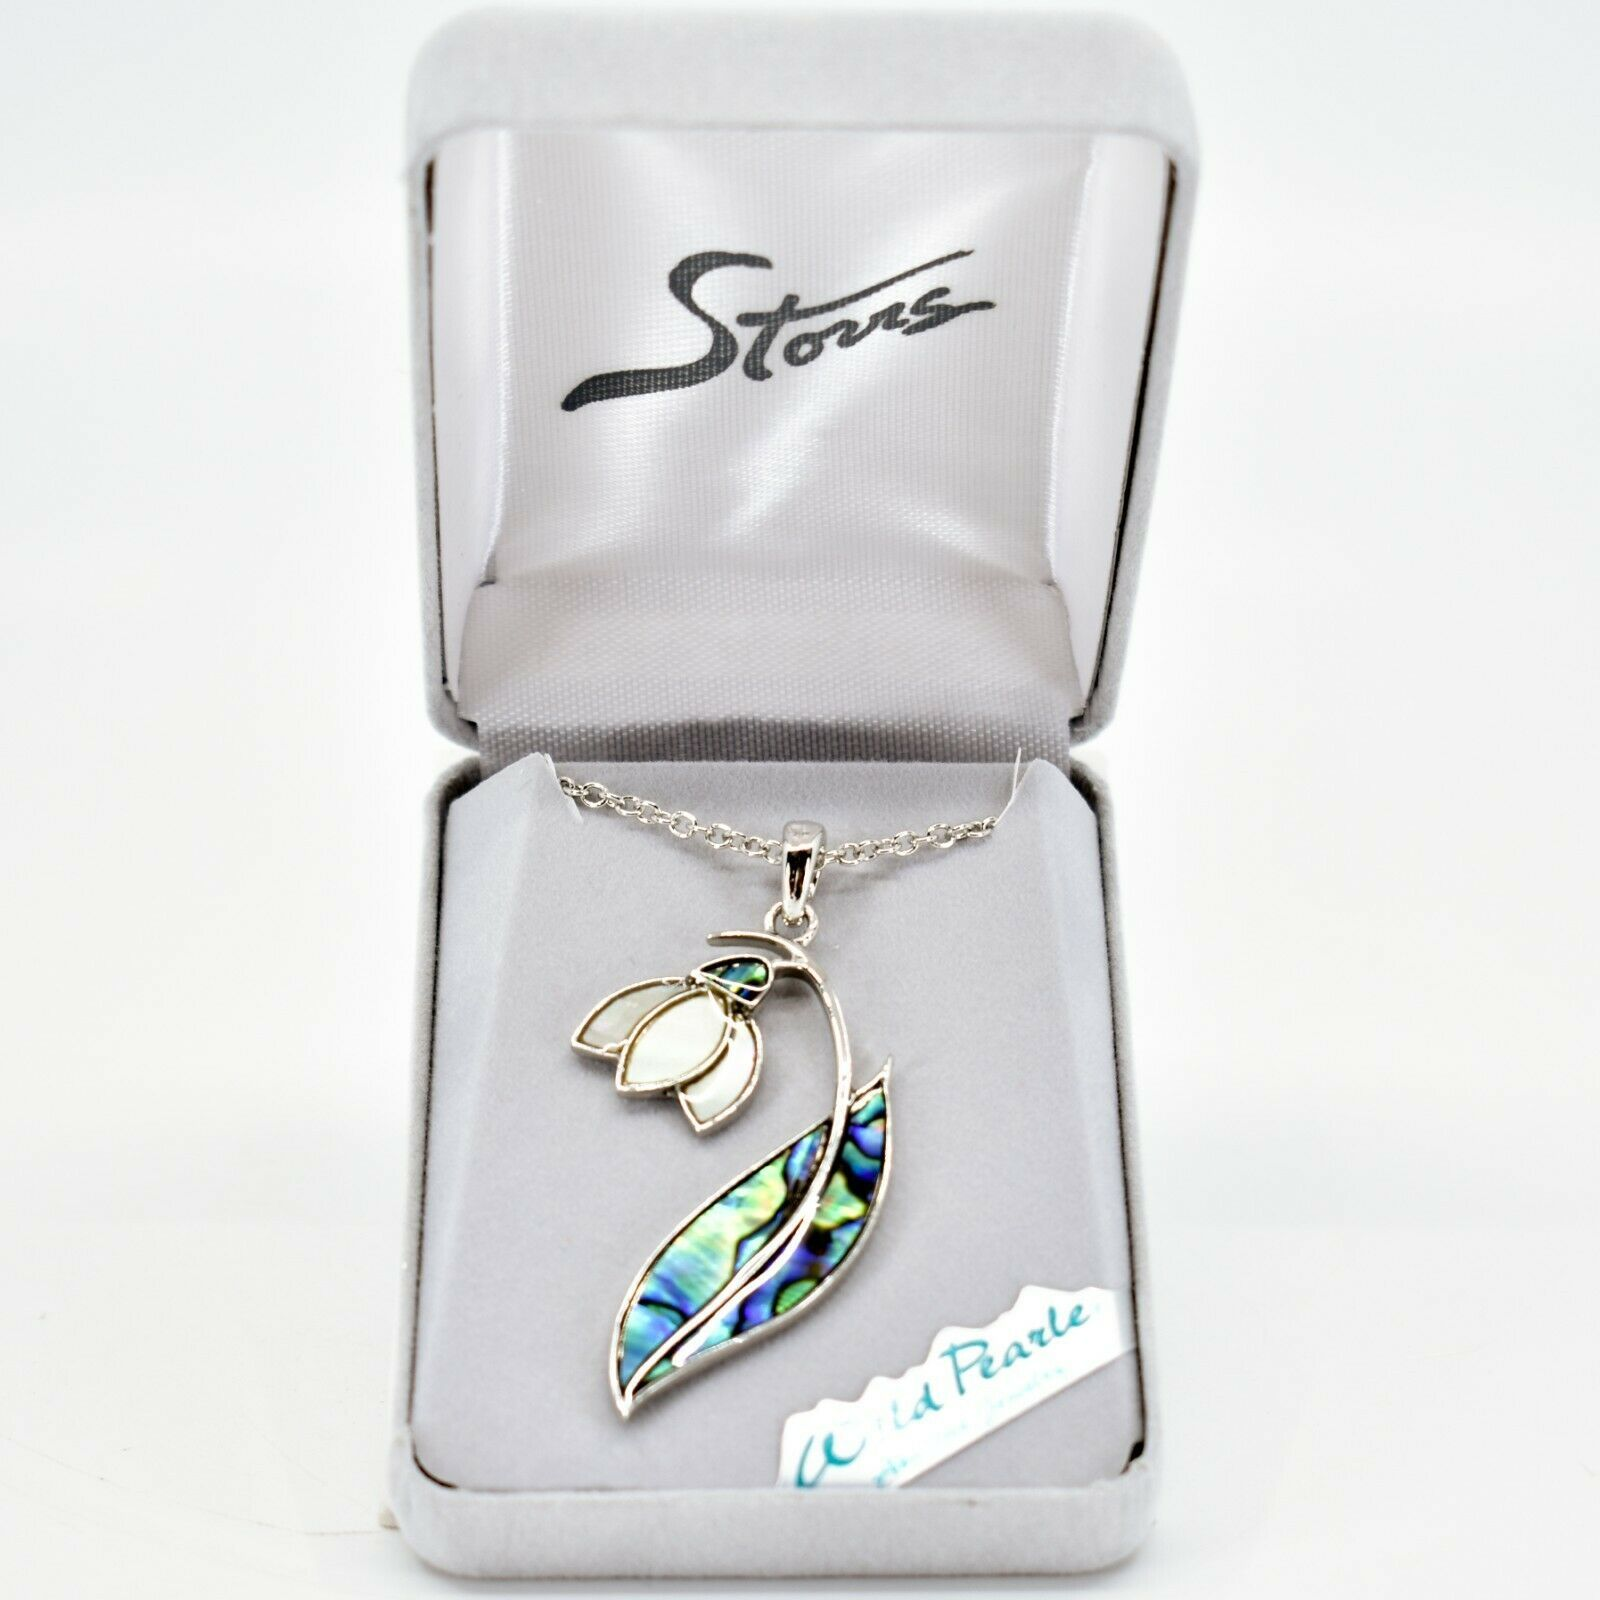 A.T. Storrs Wild Pearle Abalone Shell Snowdrop Floral Flower Pendant & Necklace